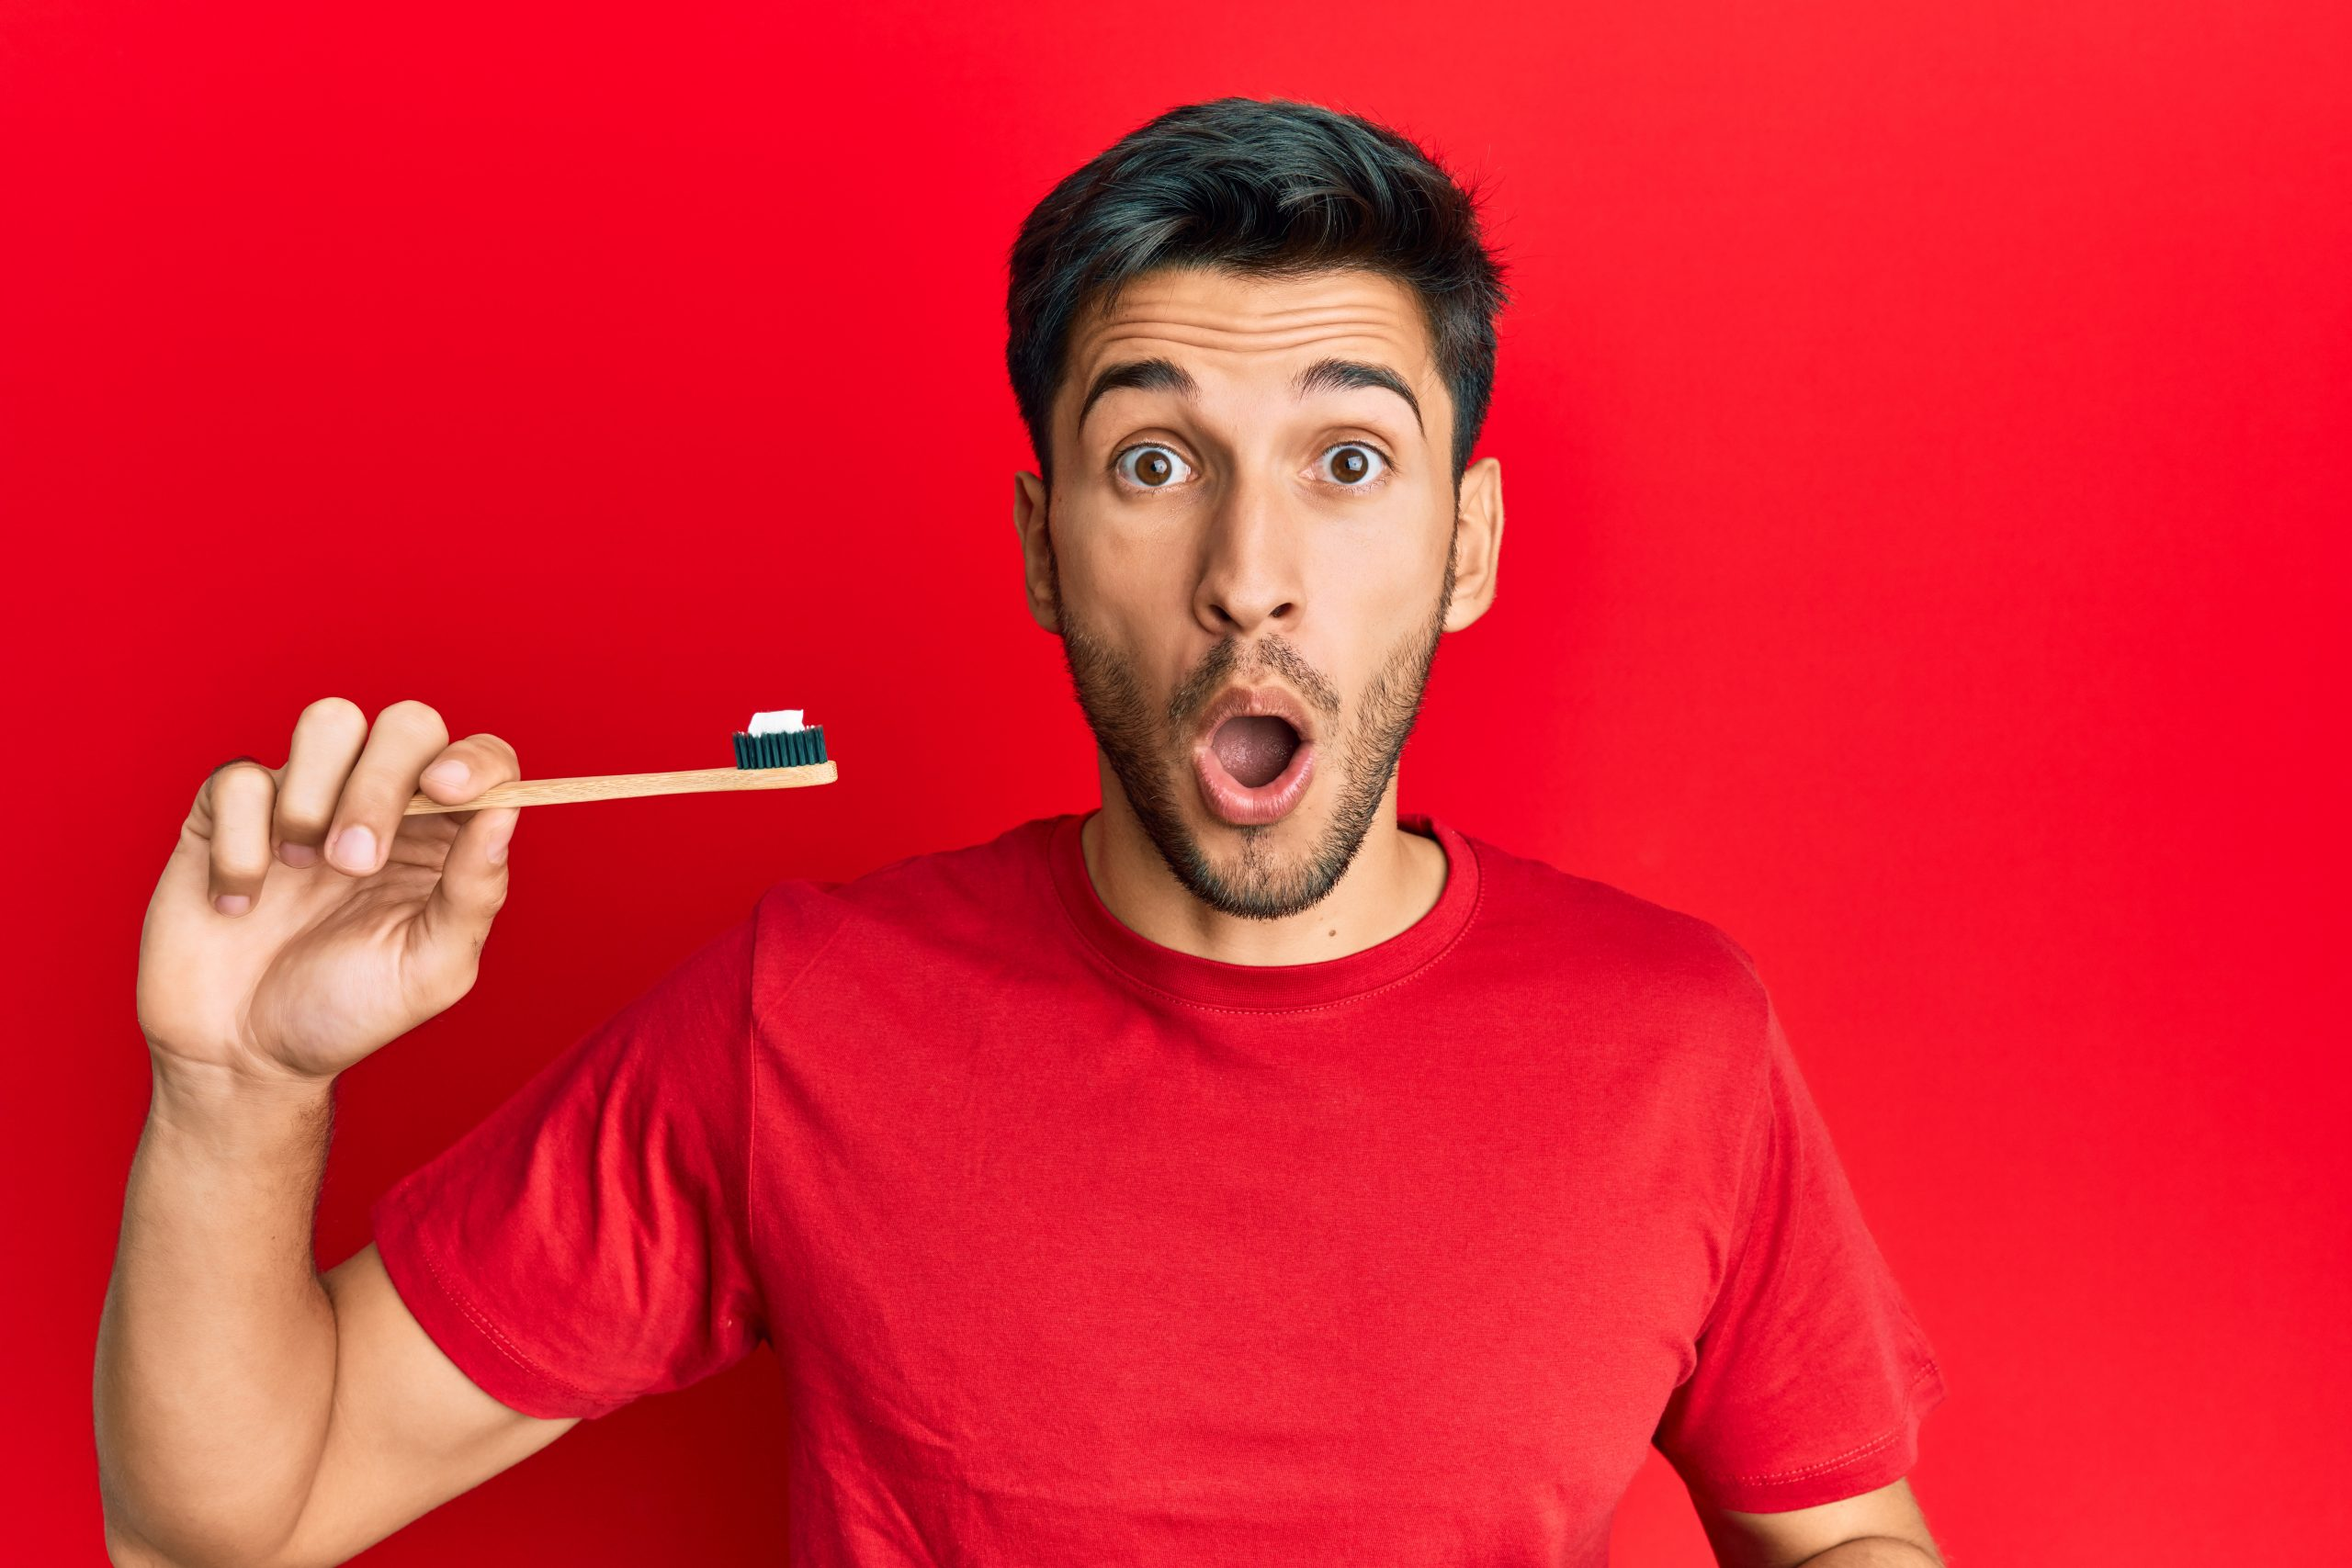 surprised man holding toothbrush about to brush teeth with non vegan toothpaste